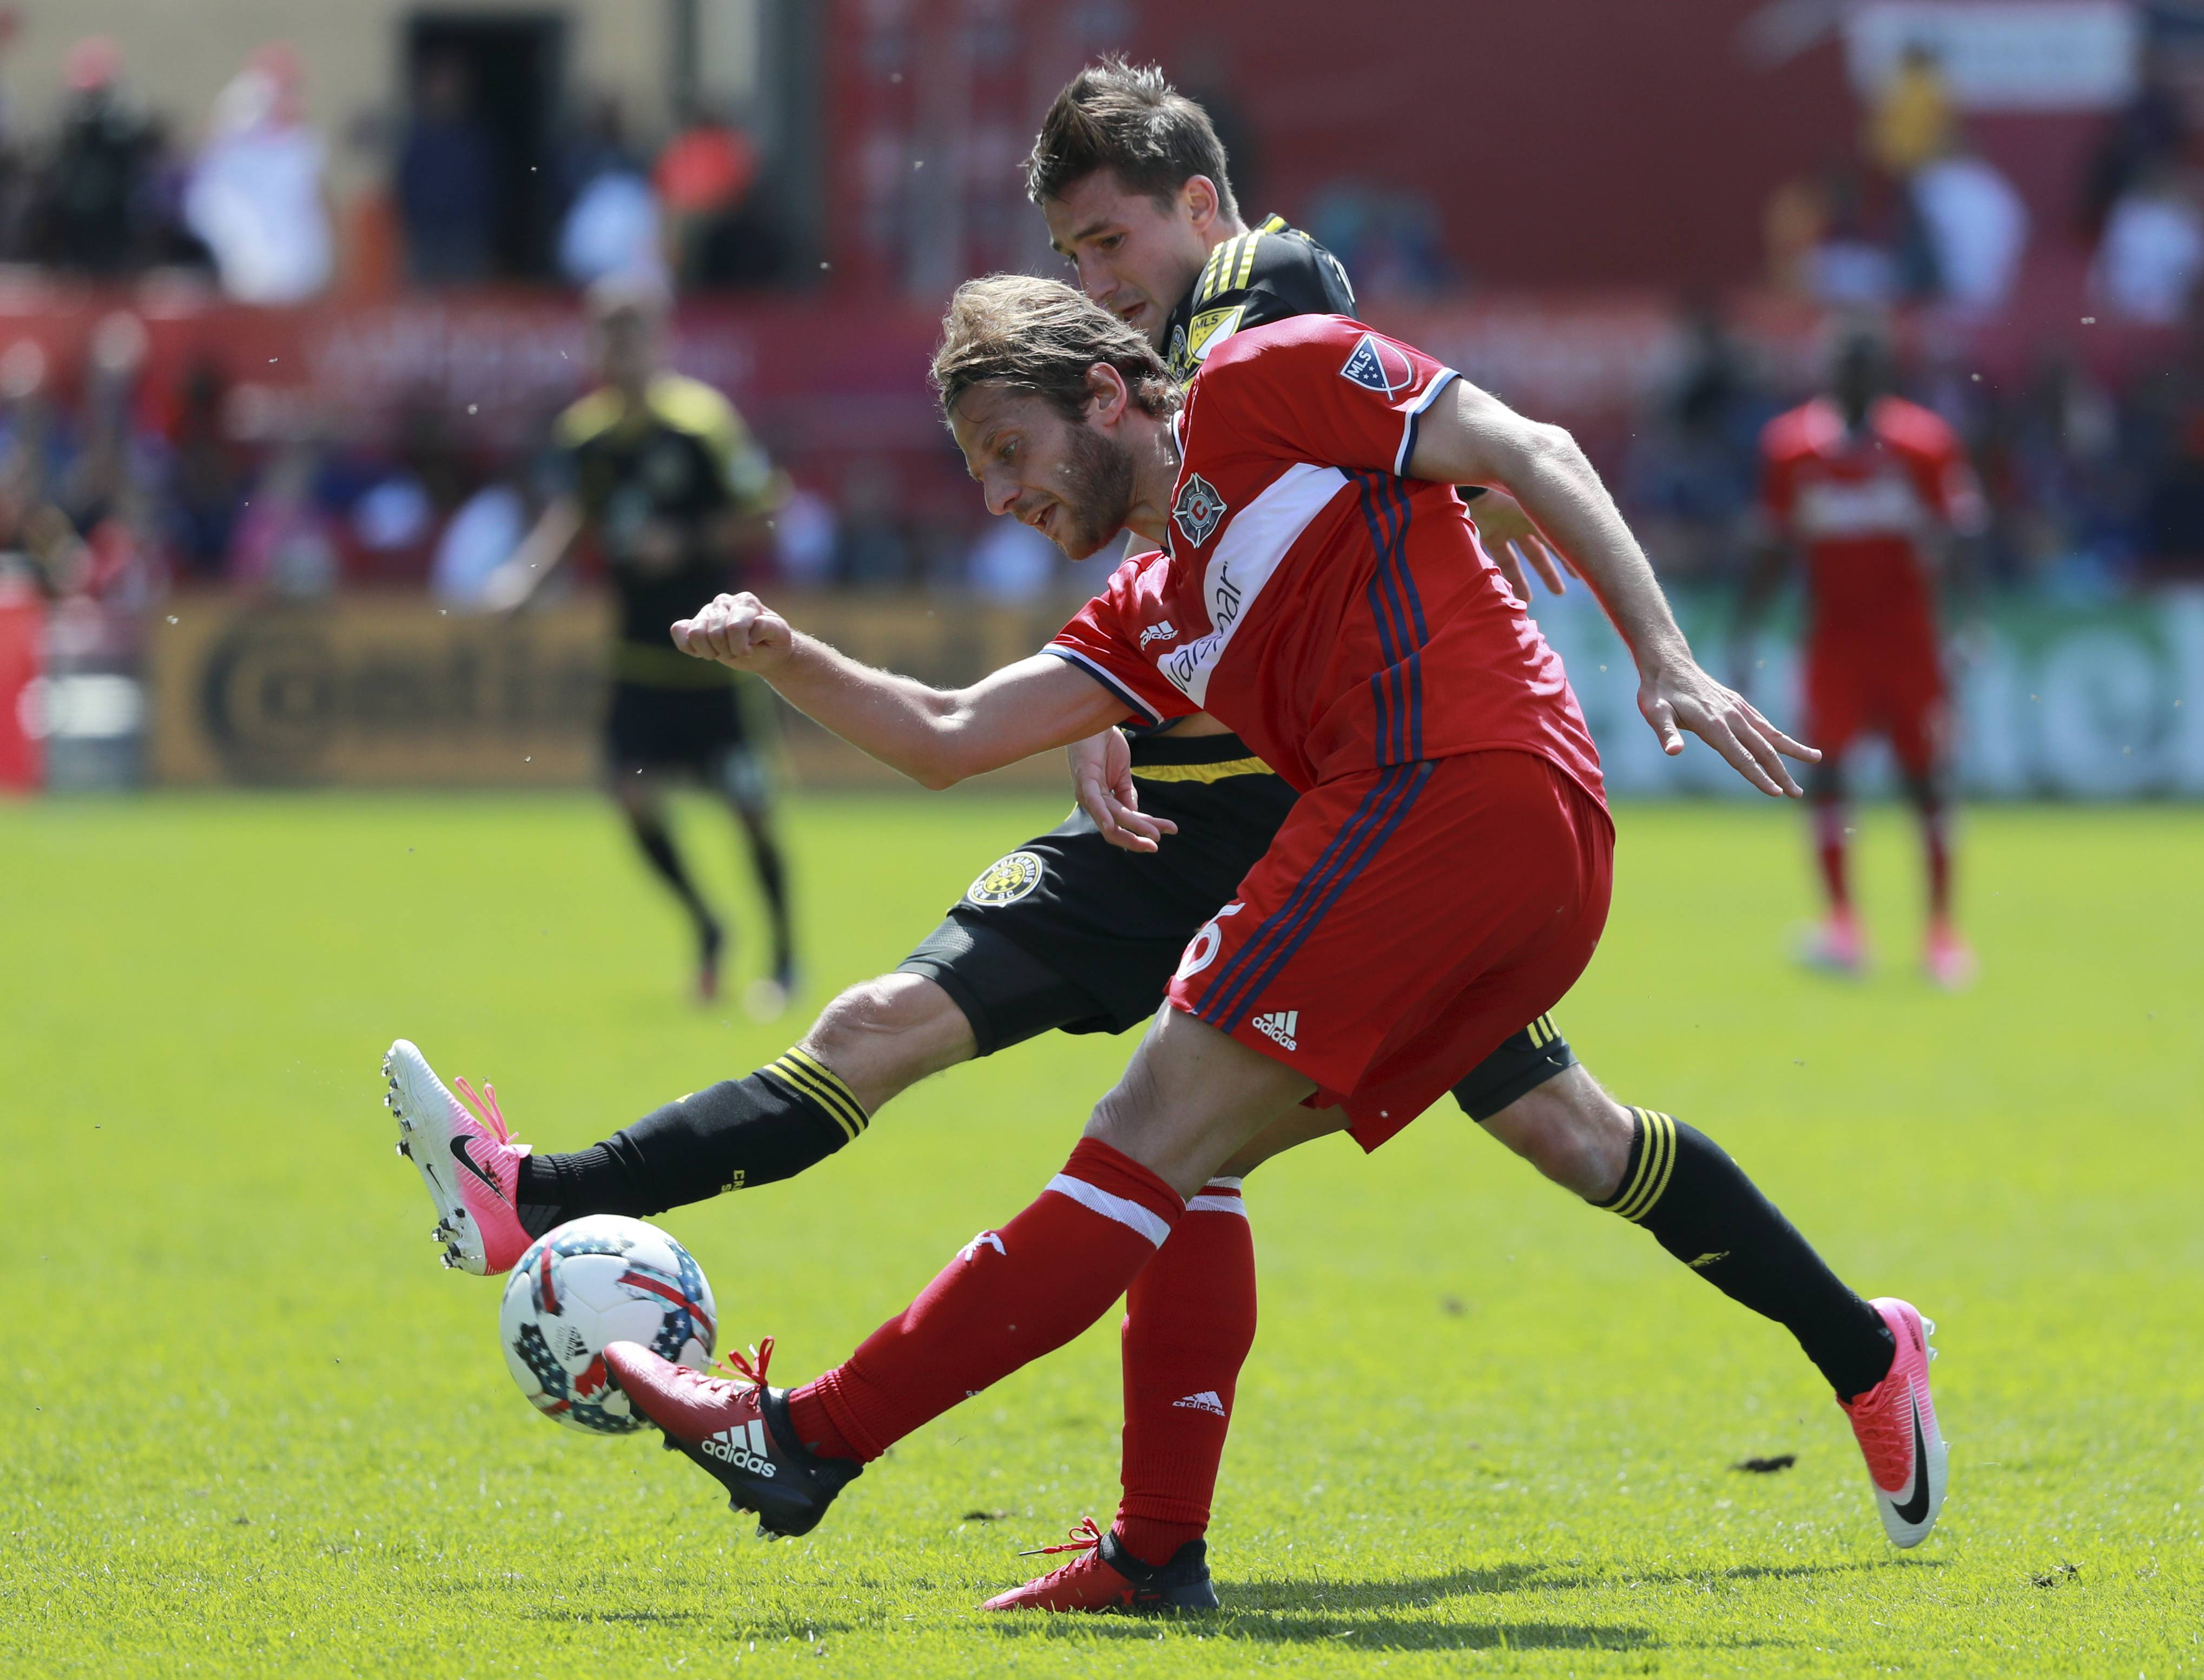 Chicago Fire defender Joao Meira (66) and Columbus Crew midfielder Ethan Finlay (13) battle for the ball during the first half of an MLS soccer match, Saturday, April 8, 2017, in Chicago.